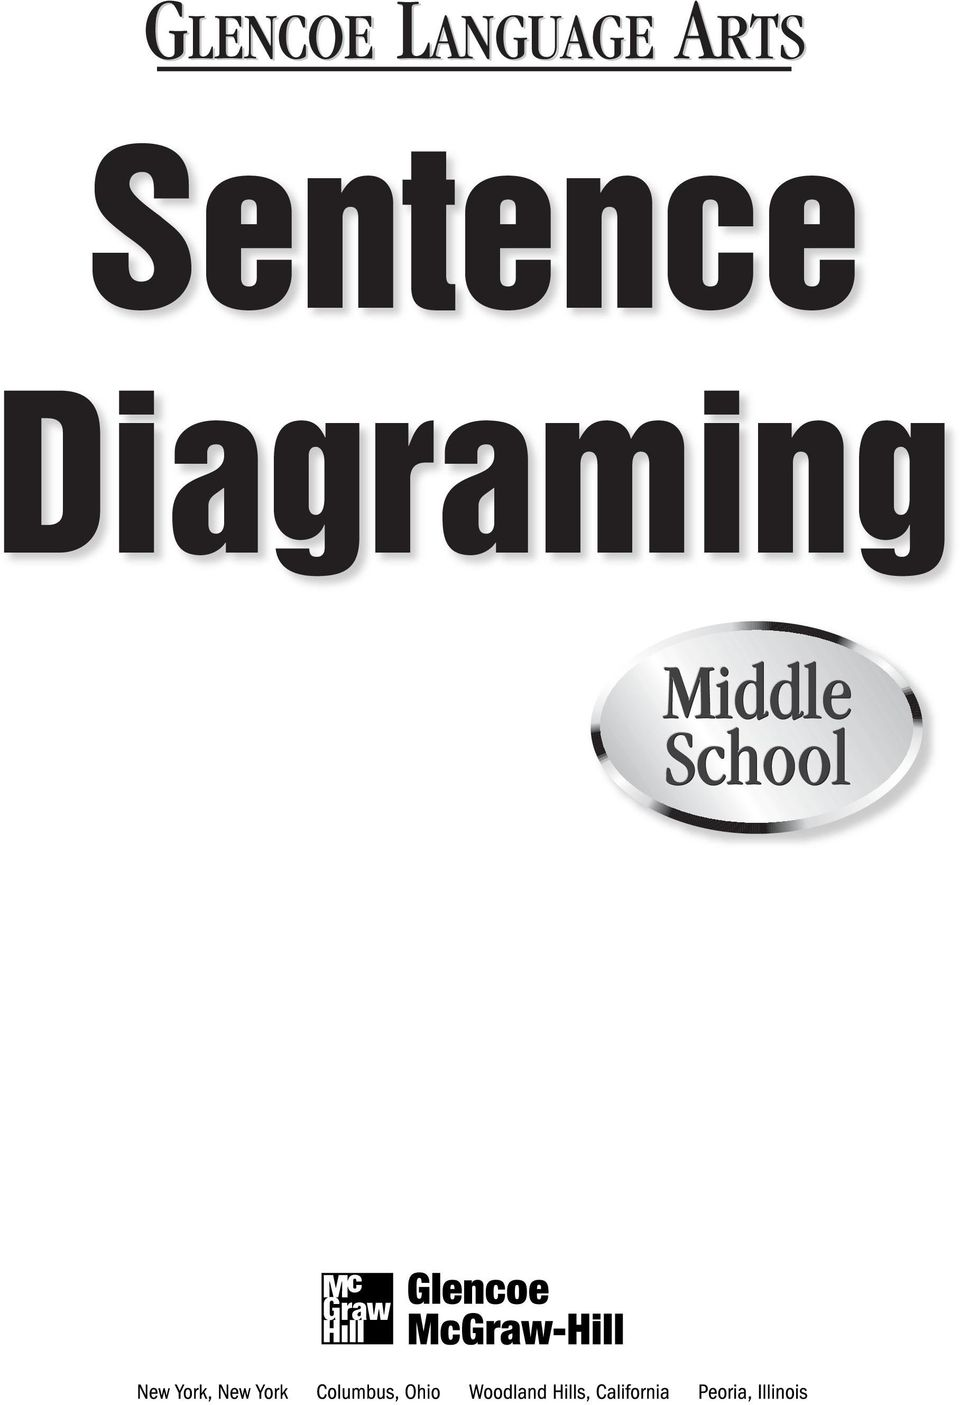 Glencoe language arts sentence diagraming pdf 2 to teacher sentence diagraming is a blackline master workbook that offers samples exercises step by step instructions to exp students knowledge of ccuart Choice Image